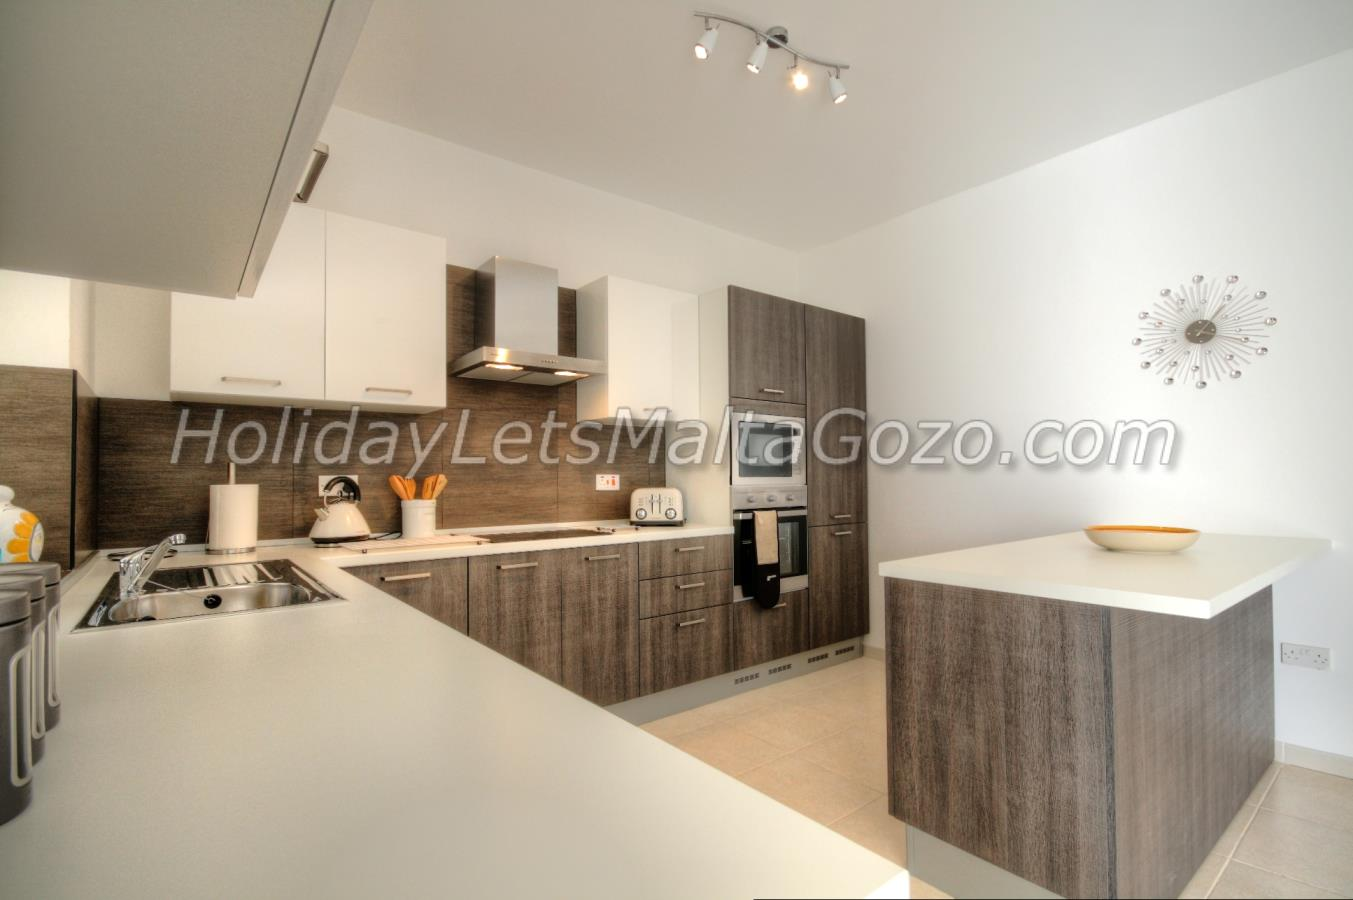 Large modern kitchen with breakfast bar